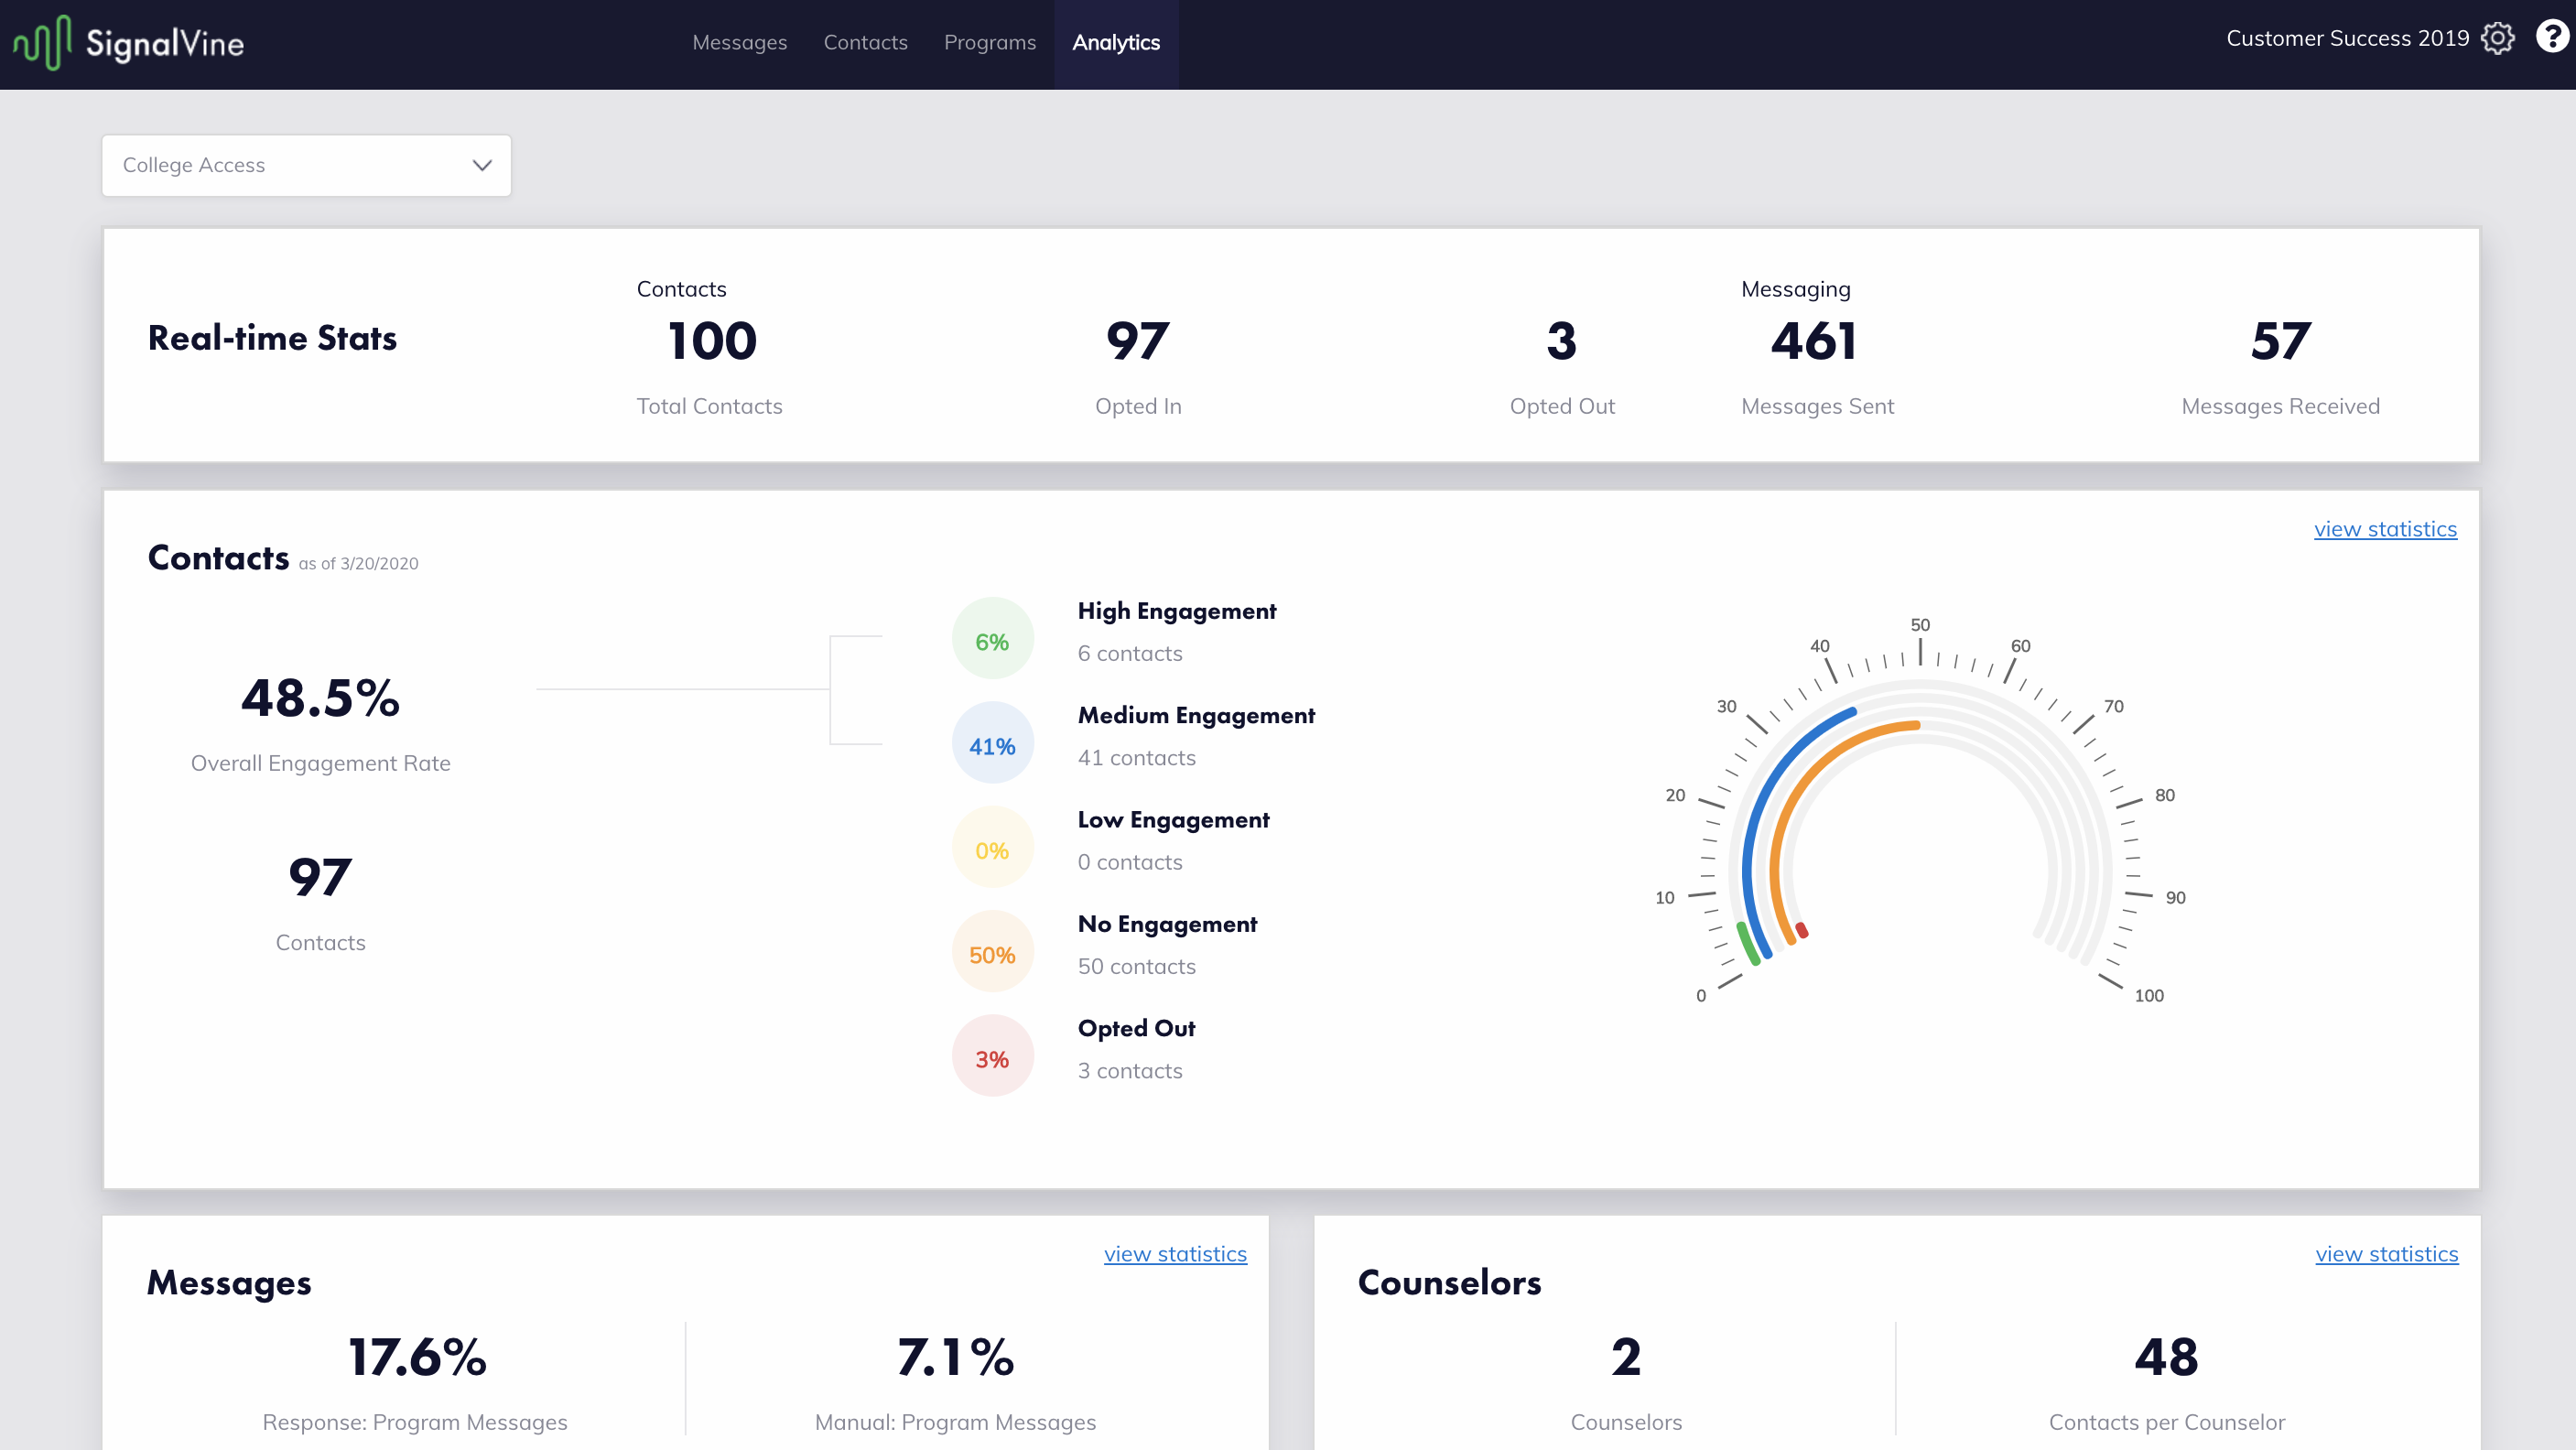 Image of the Analytics tab depicting the Real-time Stats and program engagement rate